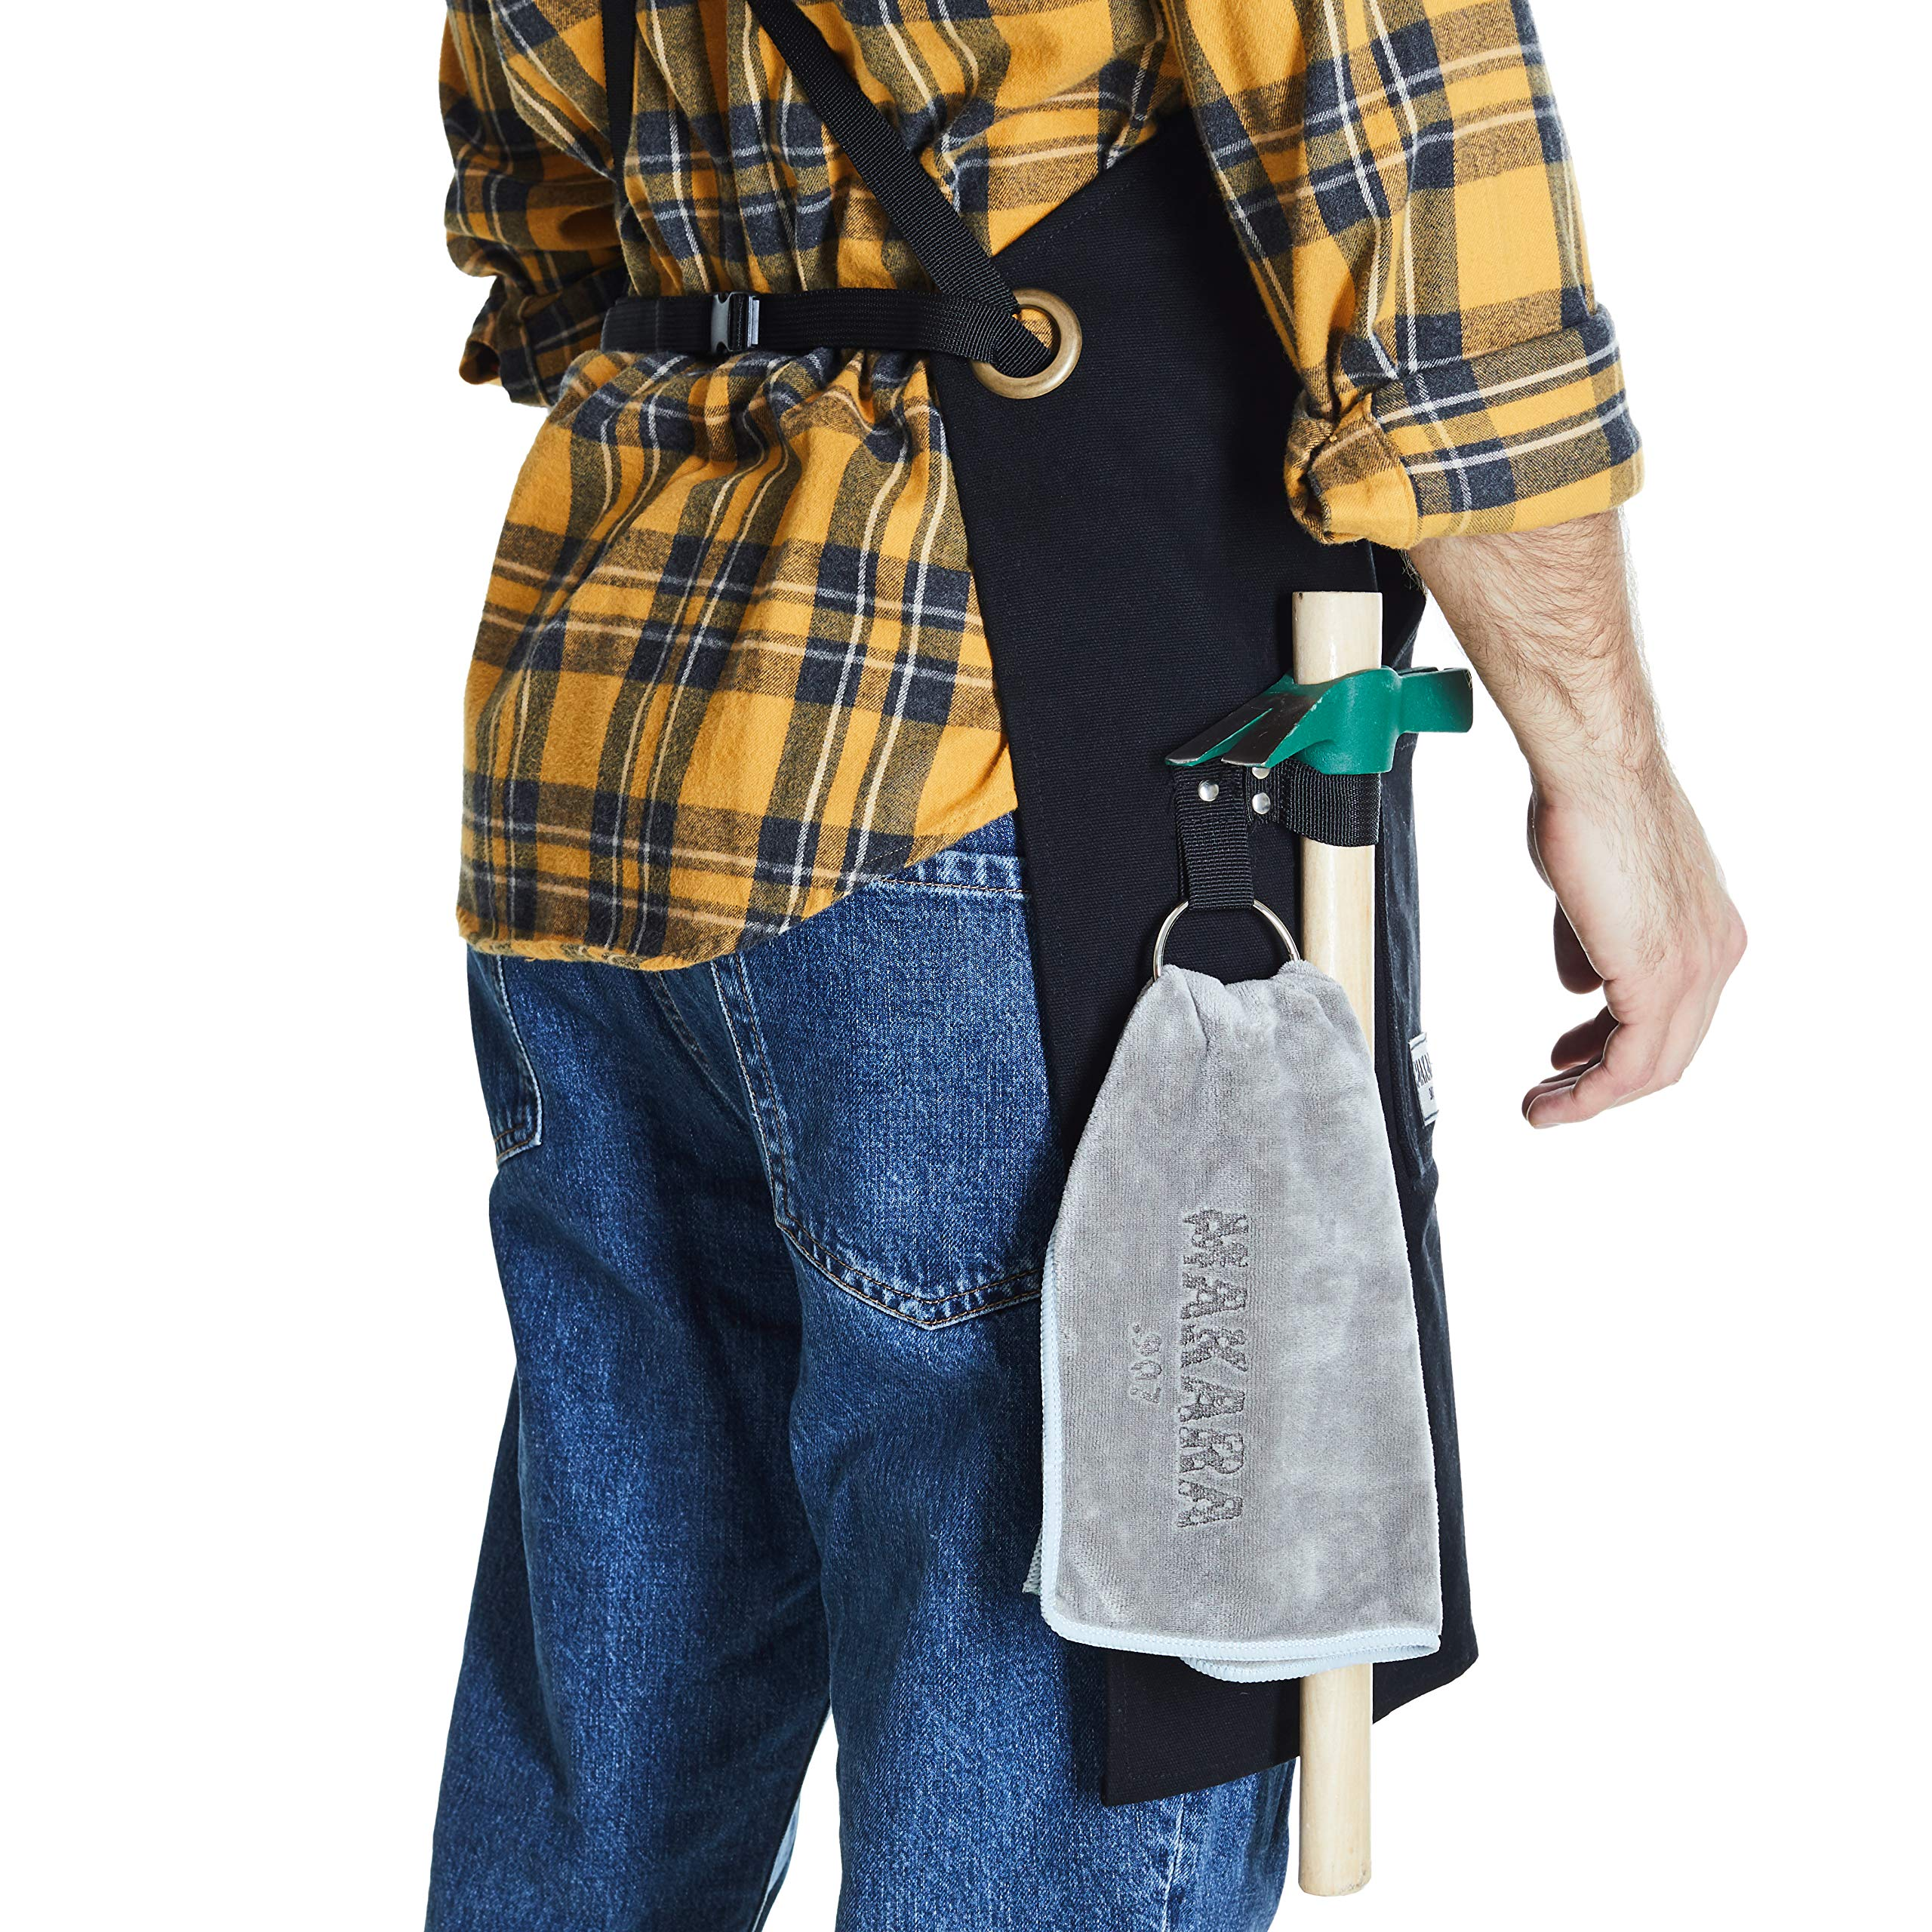 Shop, Work Apron - Waxed Canvas woodworking apron with 6 Spacious Pockets - Durable Apron Tool with Microfiber Towel Included - No Neck Pain, Smart Cross-Back Straps Design - Fully Adjustable S to XXL by Makara.907 (Image #4)